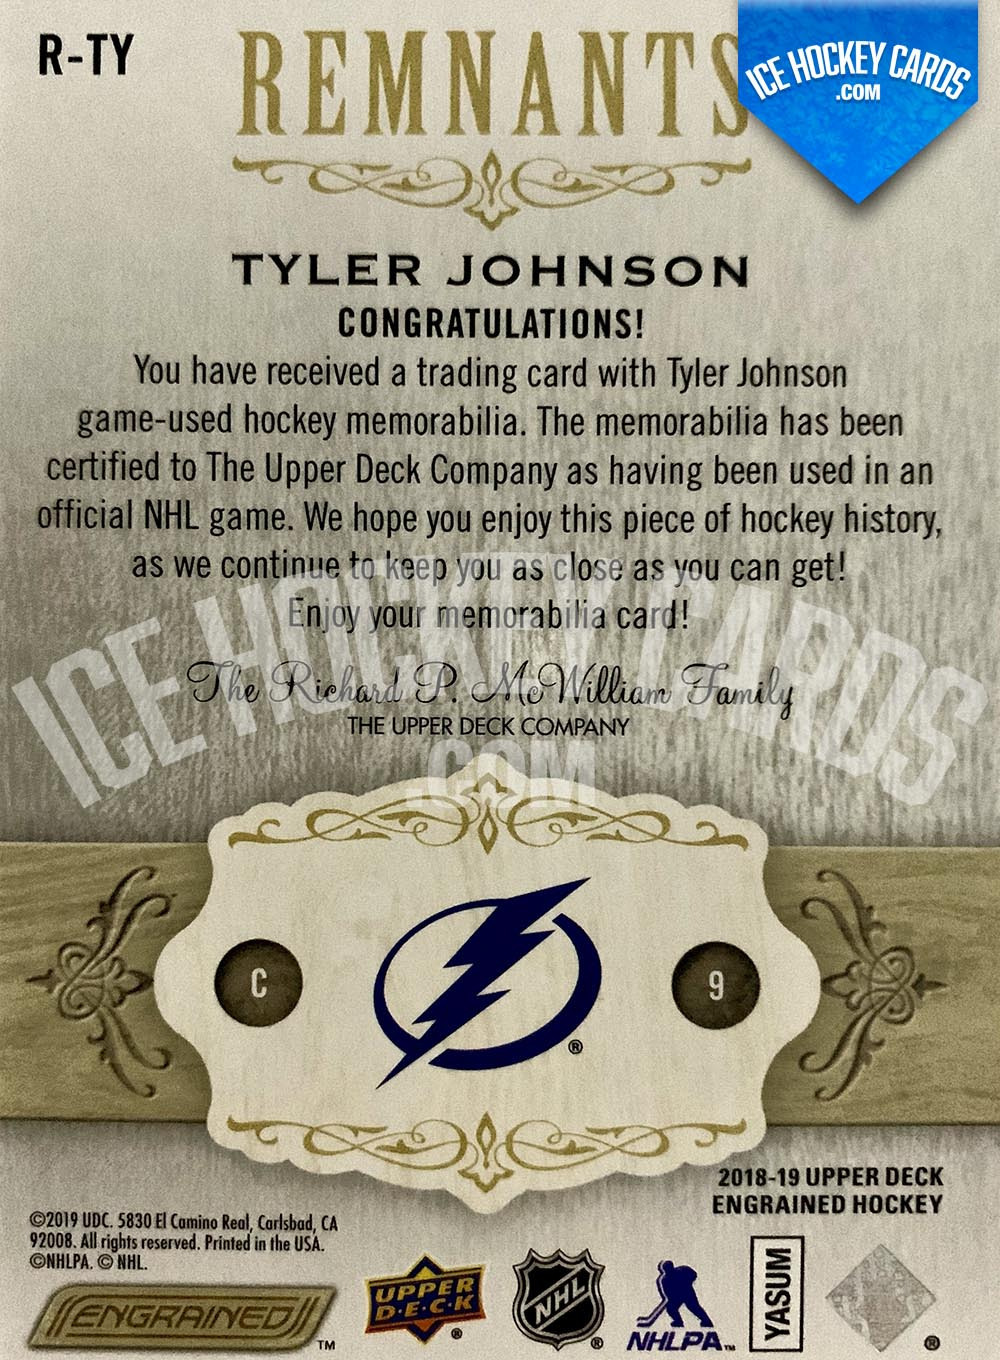 Upper Deck - Engrained 2018-19 - Tyler Johnson Remnants Sticks Game-Used # to 100 back